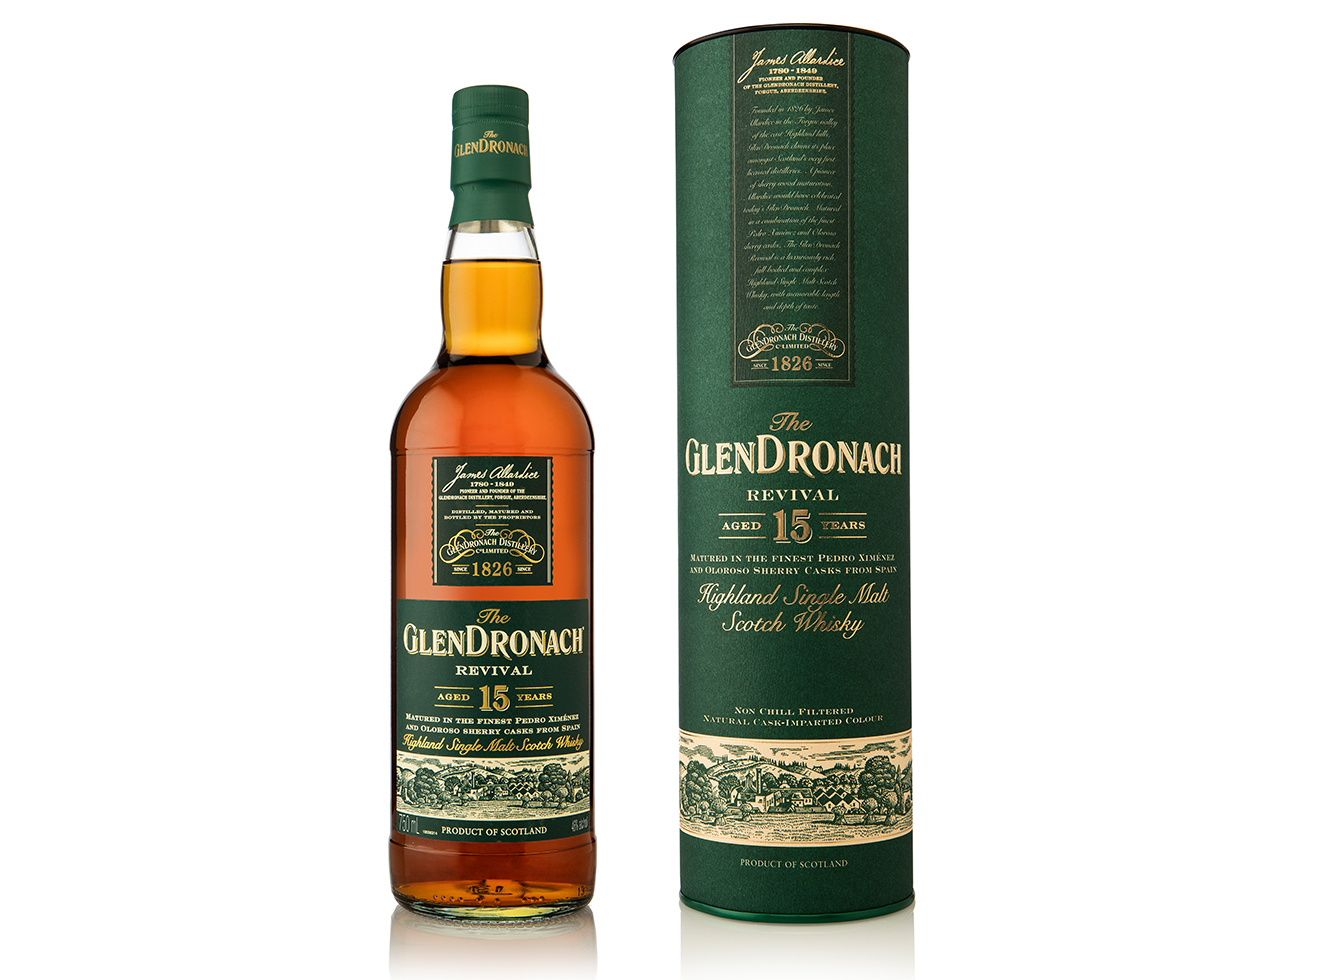 GlenDronach 15 Year Old